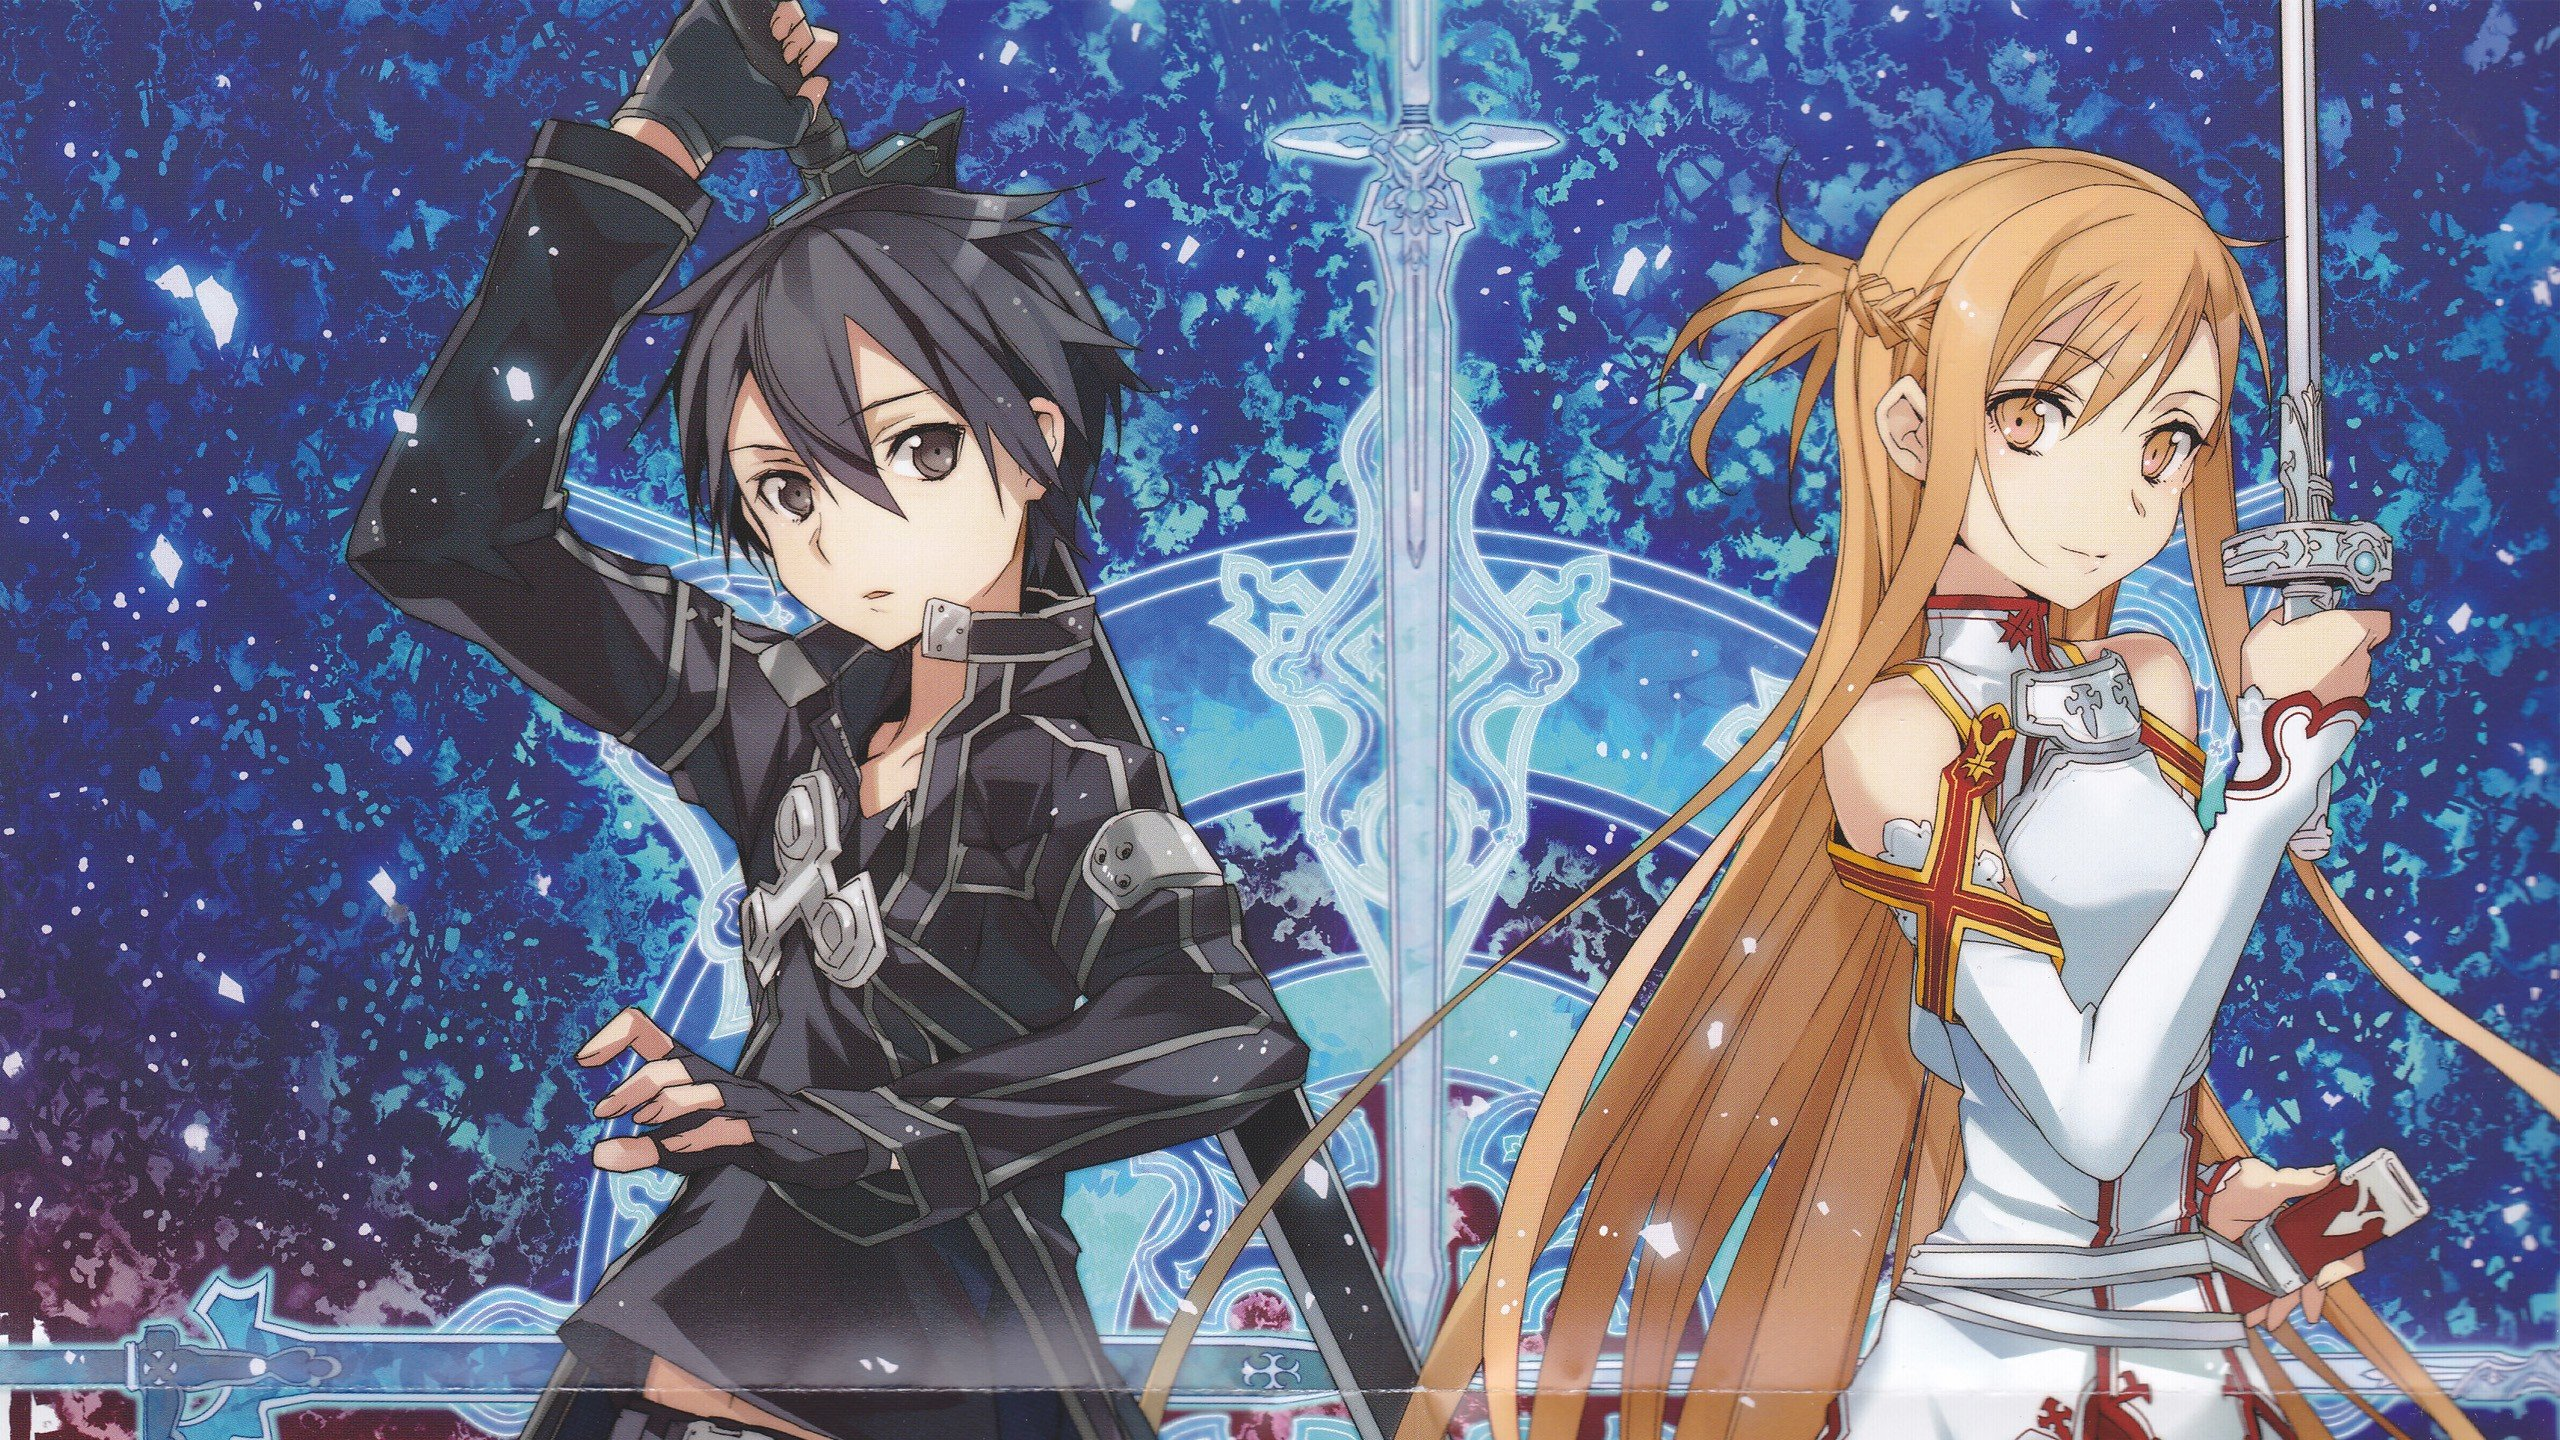 Download hd 2560x1440 Sword Art Online (SAO) PC background ID:180724 for free